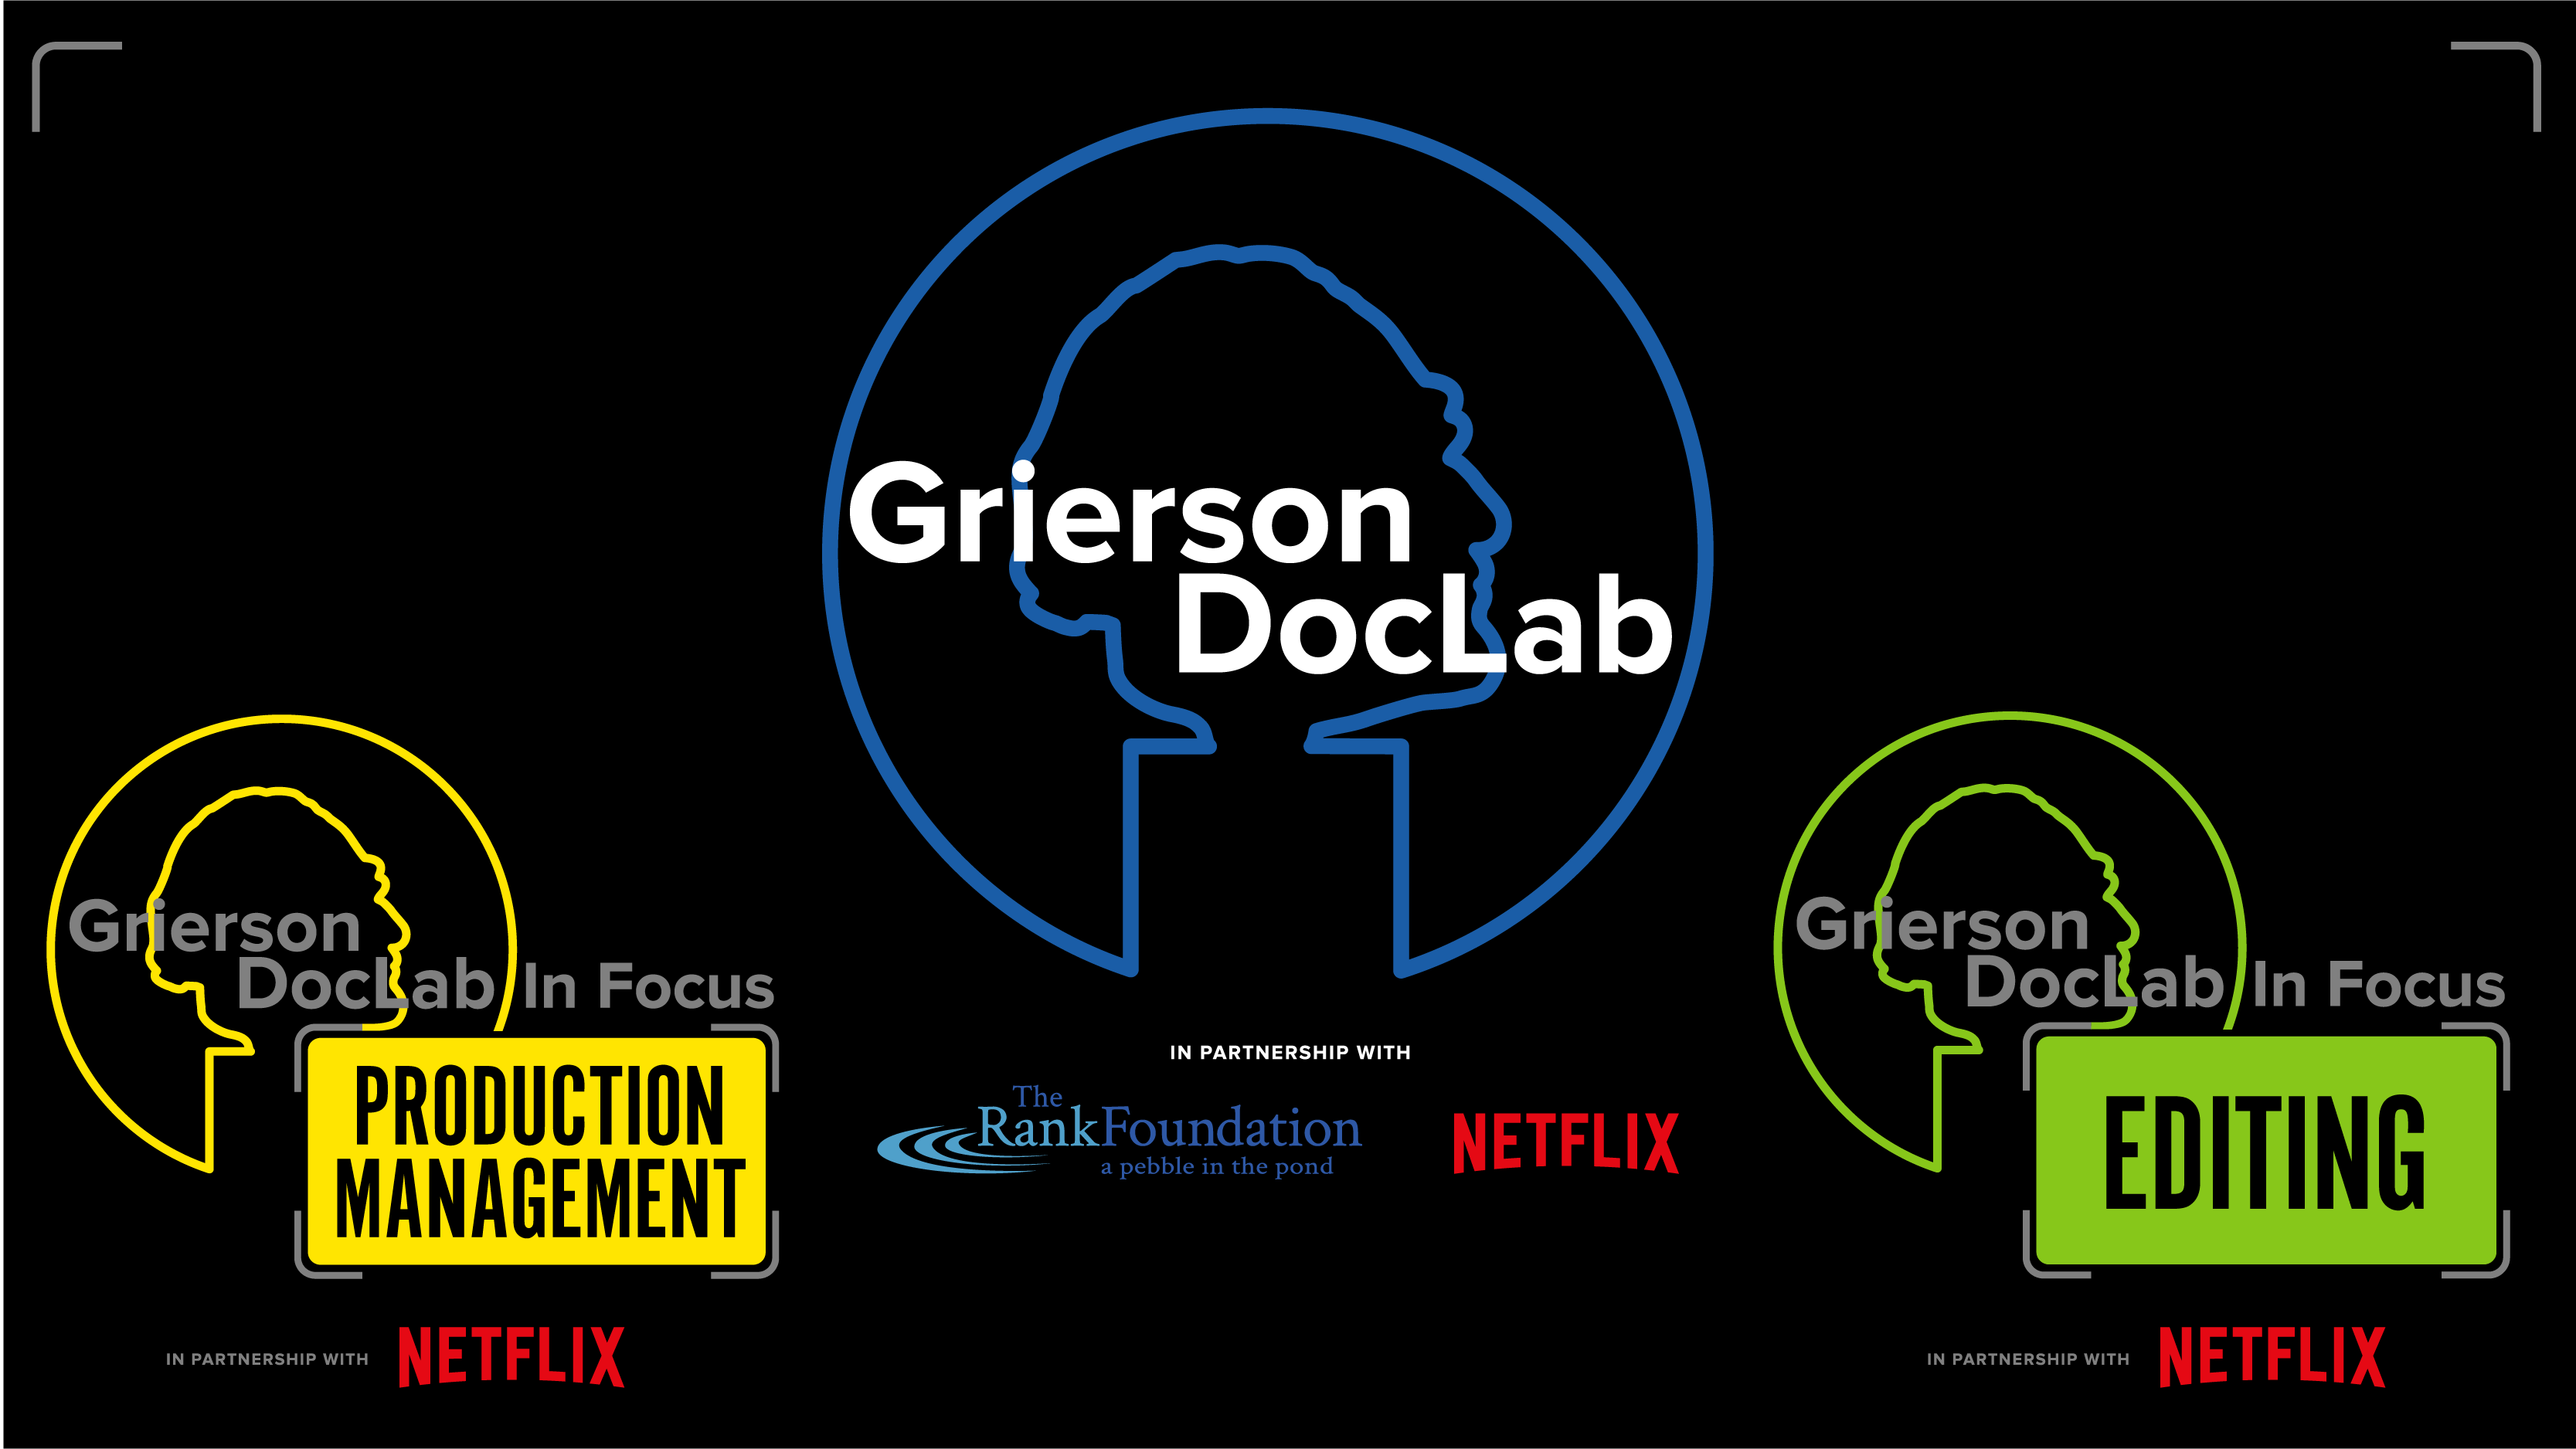 Grierson DocLab 2021 goes live